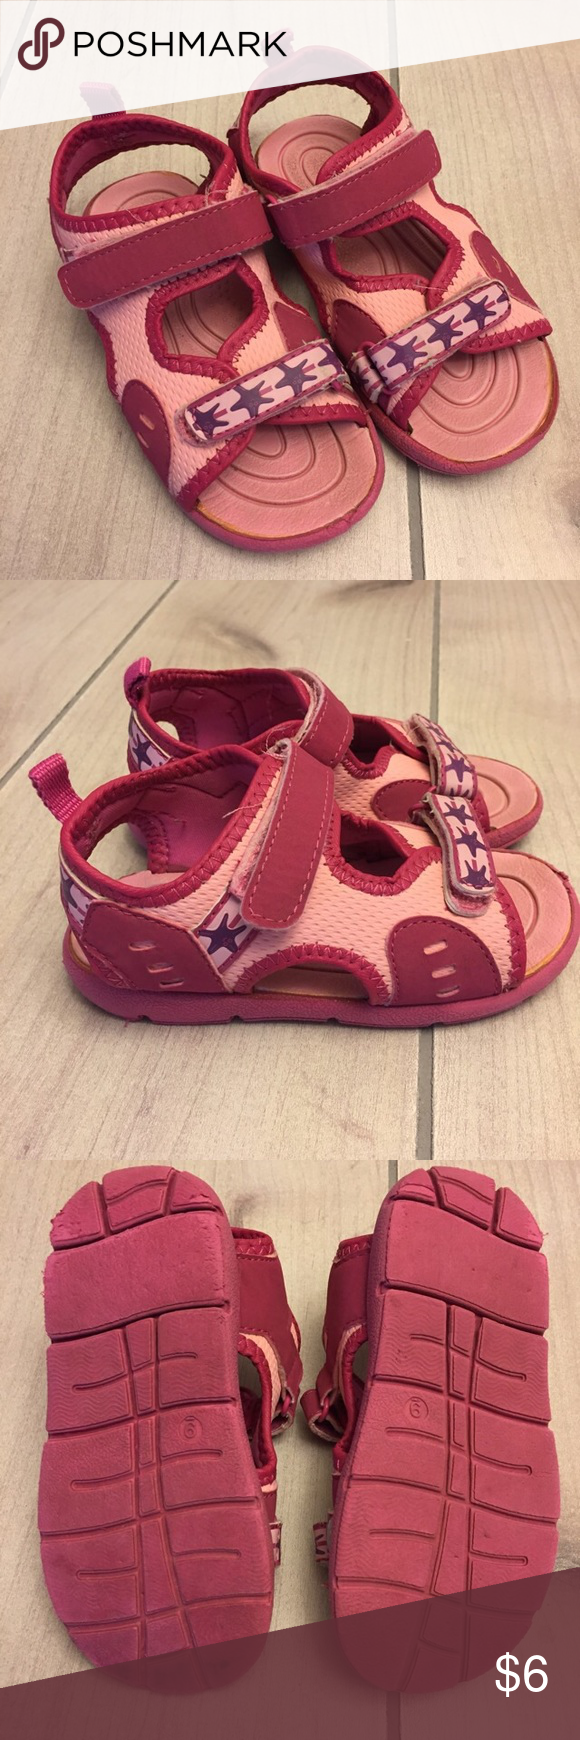 Pink Sandals Girls pink sandals. These are listed in play condition because they got a lot of camping/play wear, not because anything is wrong with them. Lots of life left. Great for water shoes. I don't know the brand but toddler size 9. 1/10/S Shoes Sandals & Flip Flops